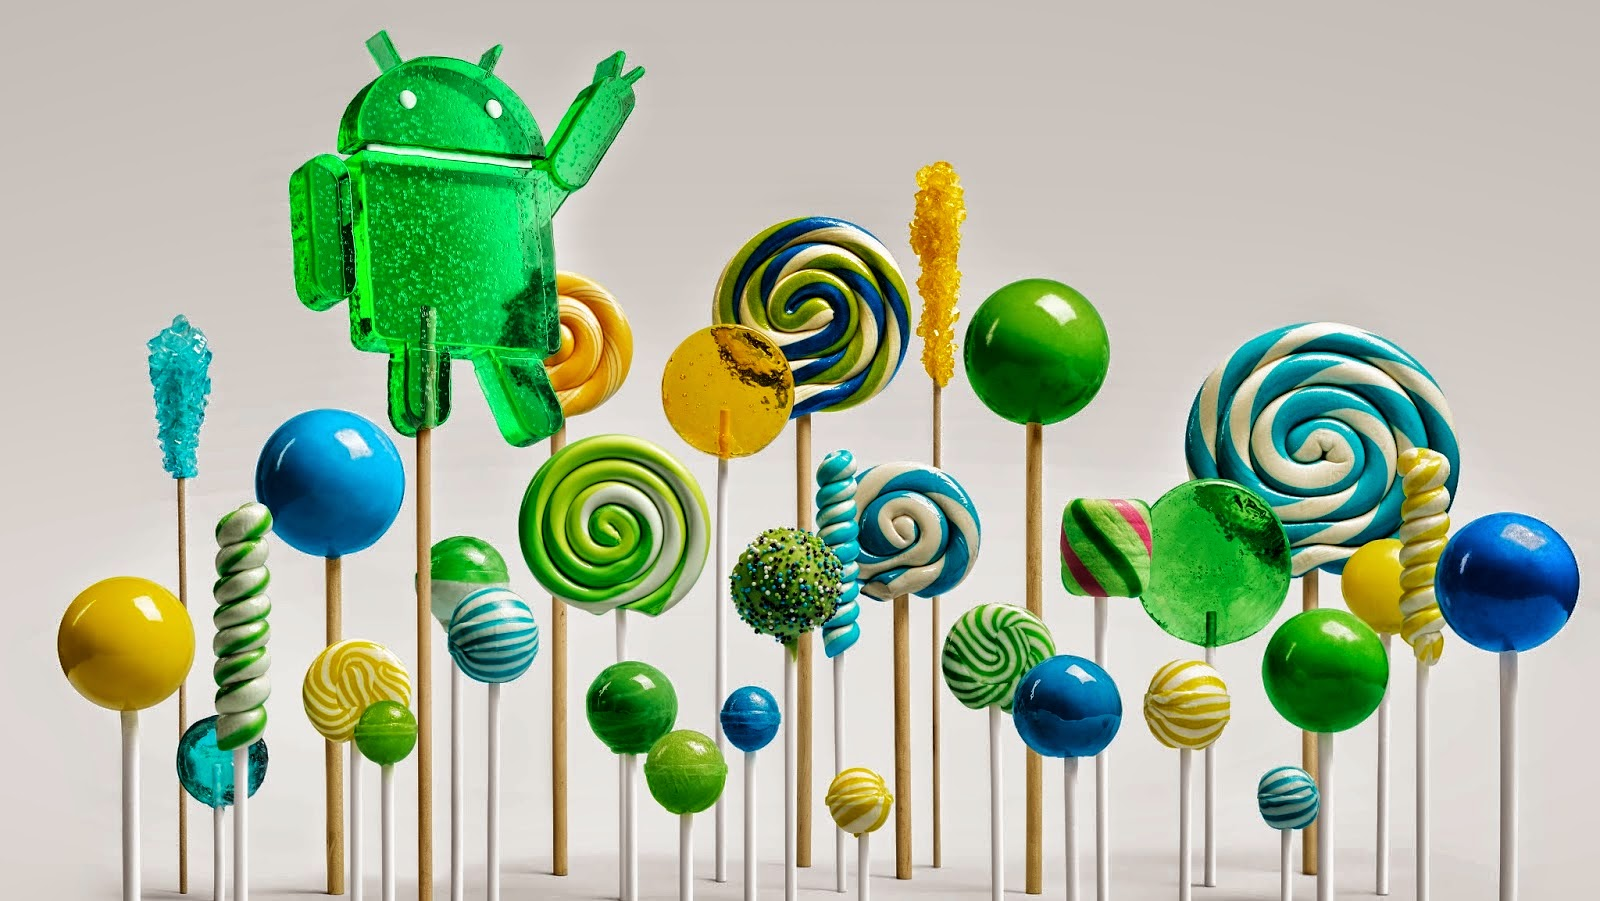 12 of the best new features in Android Lollipop